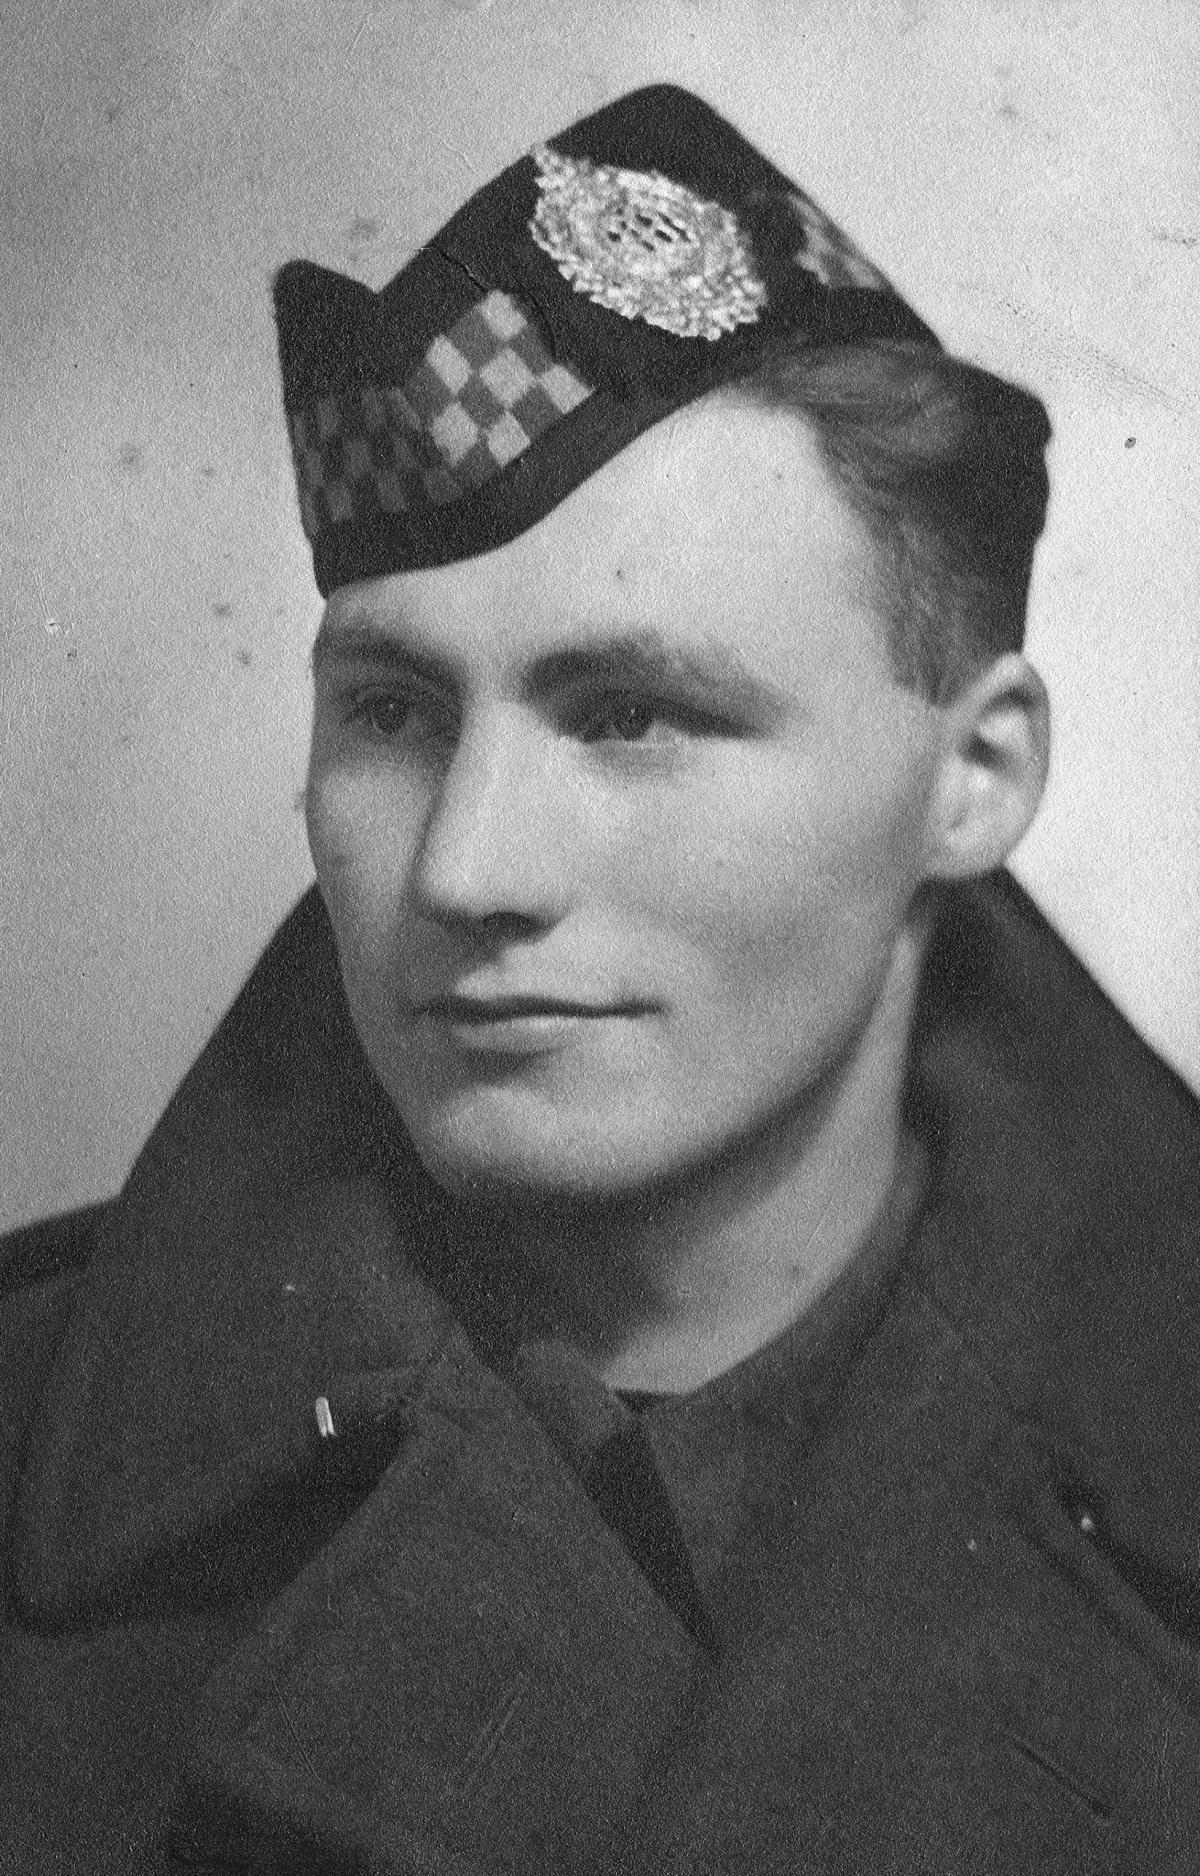 John Bain, shown above in 1940, is one of the men Glass profiles in The Deserters.